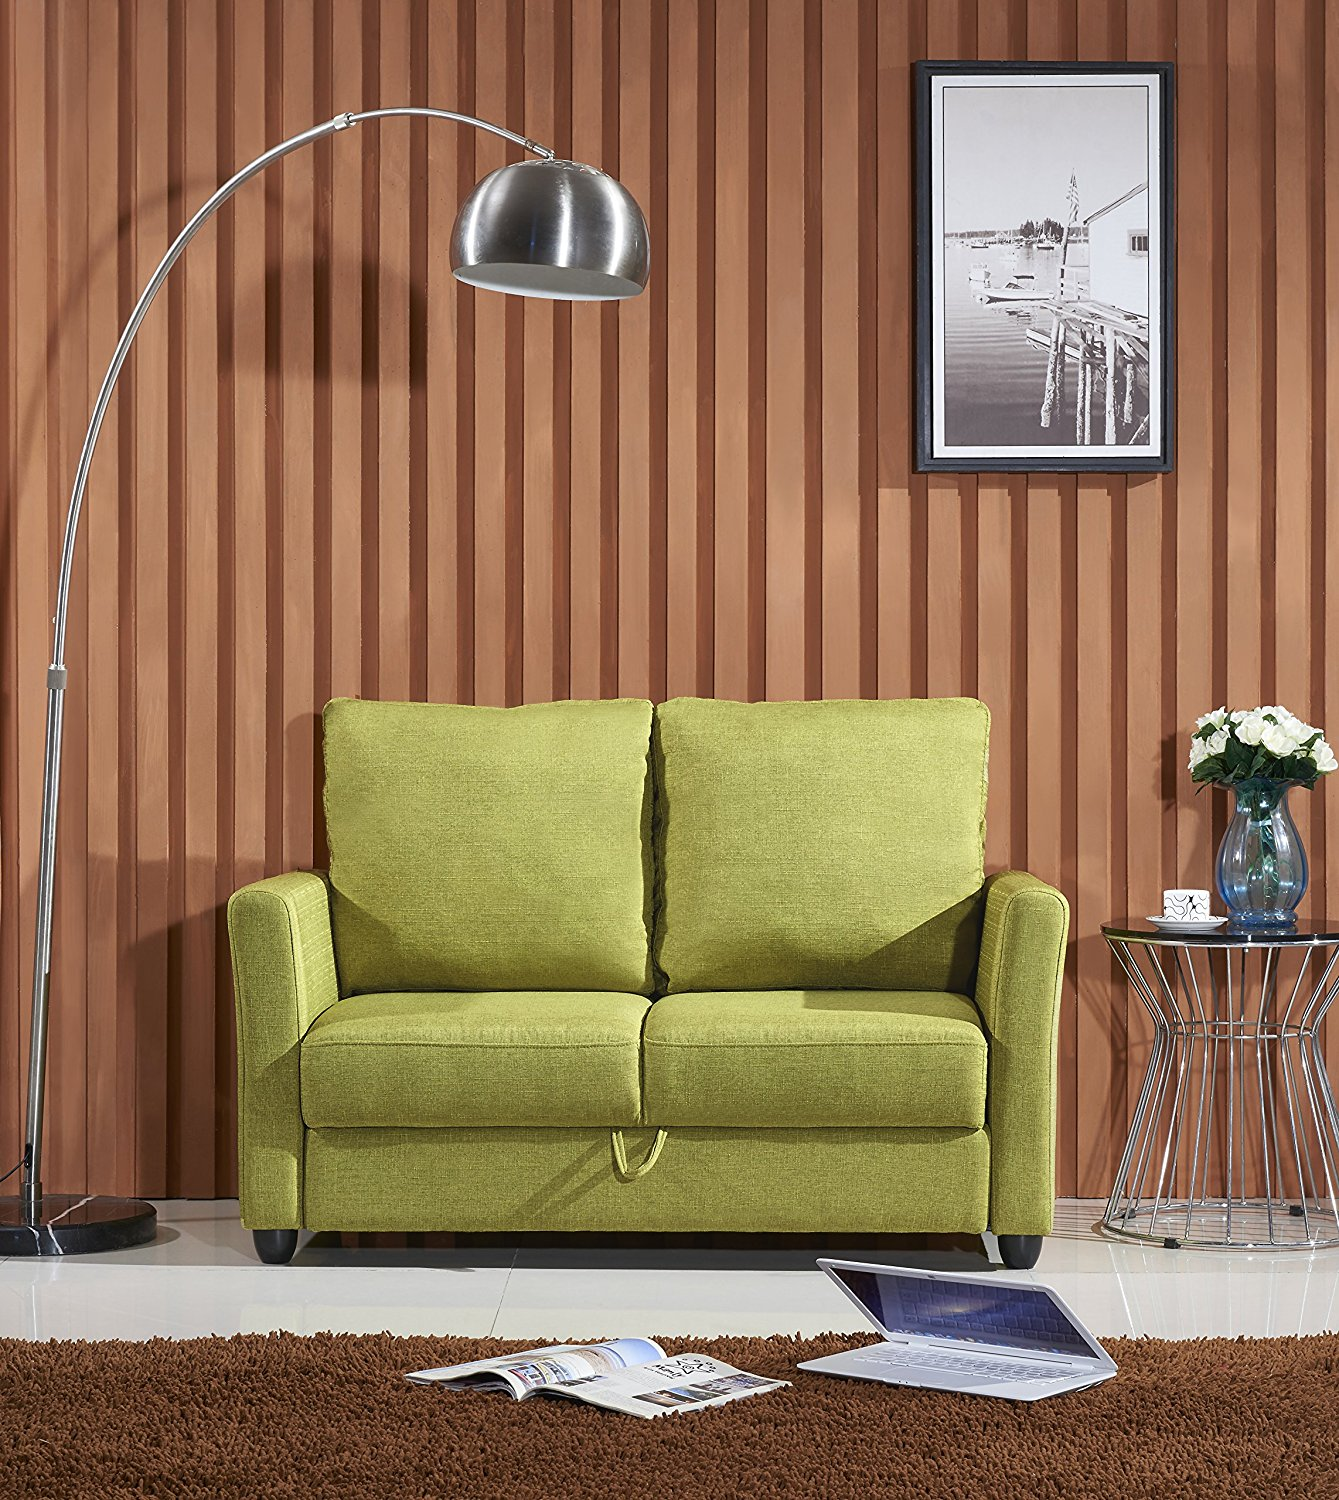 Container Furniture Direct Adia Collection Modern Fabric Upholstered Living Room Loveseat with Storage, Green